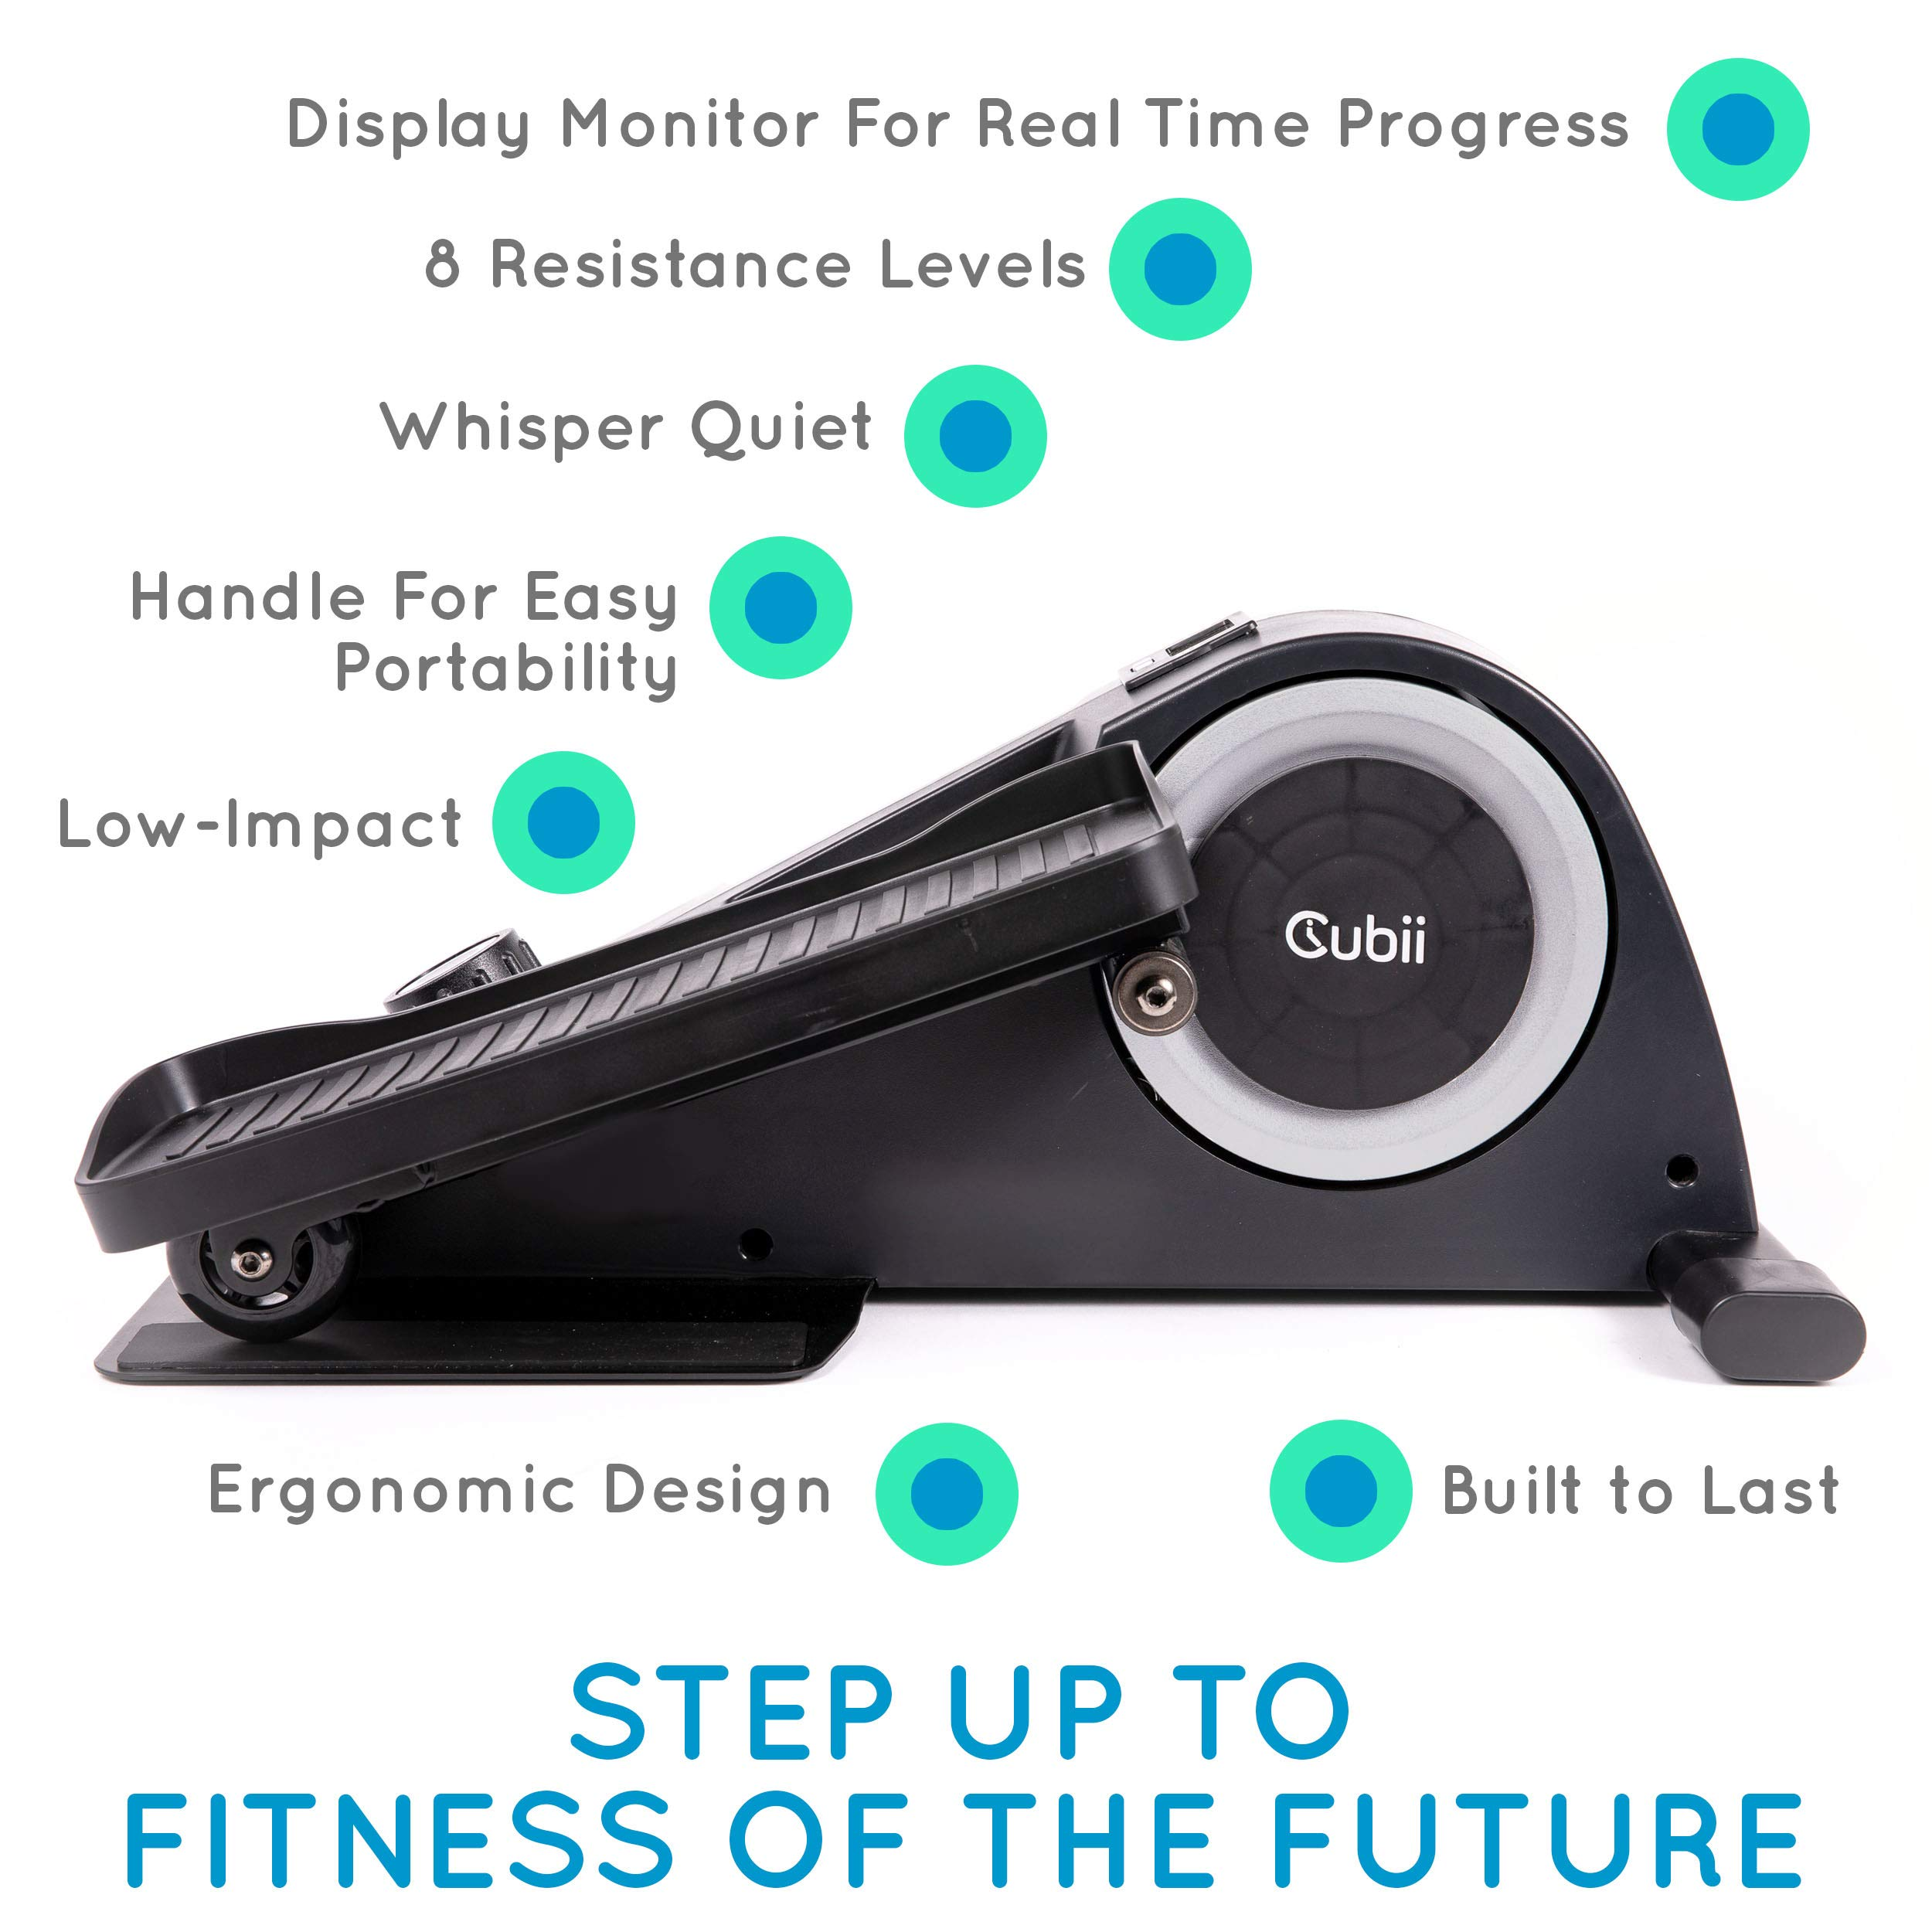 Cubii Jr: Desk Elliptical w/Built in Display Monitor, Easy Assembly, Quiet & Compact, Adjustable Resistance (Silver) by Cubii (Image #2)